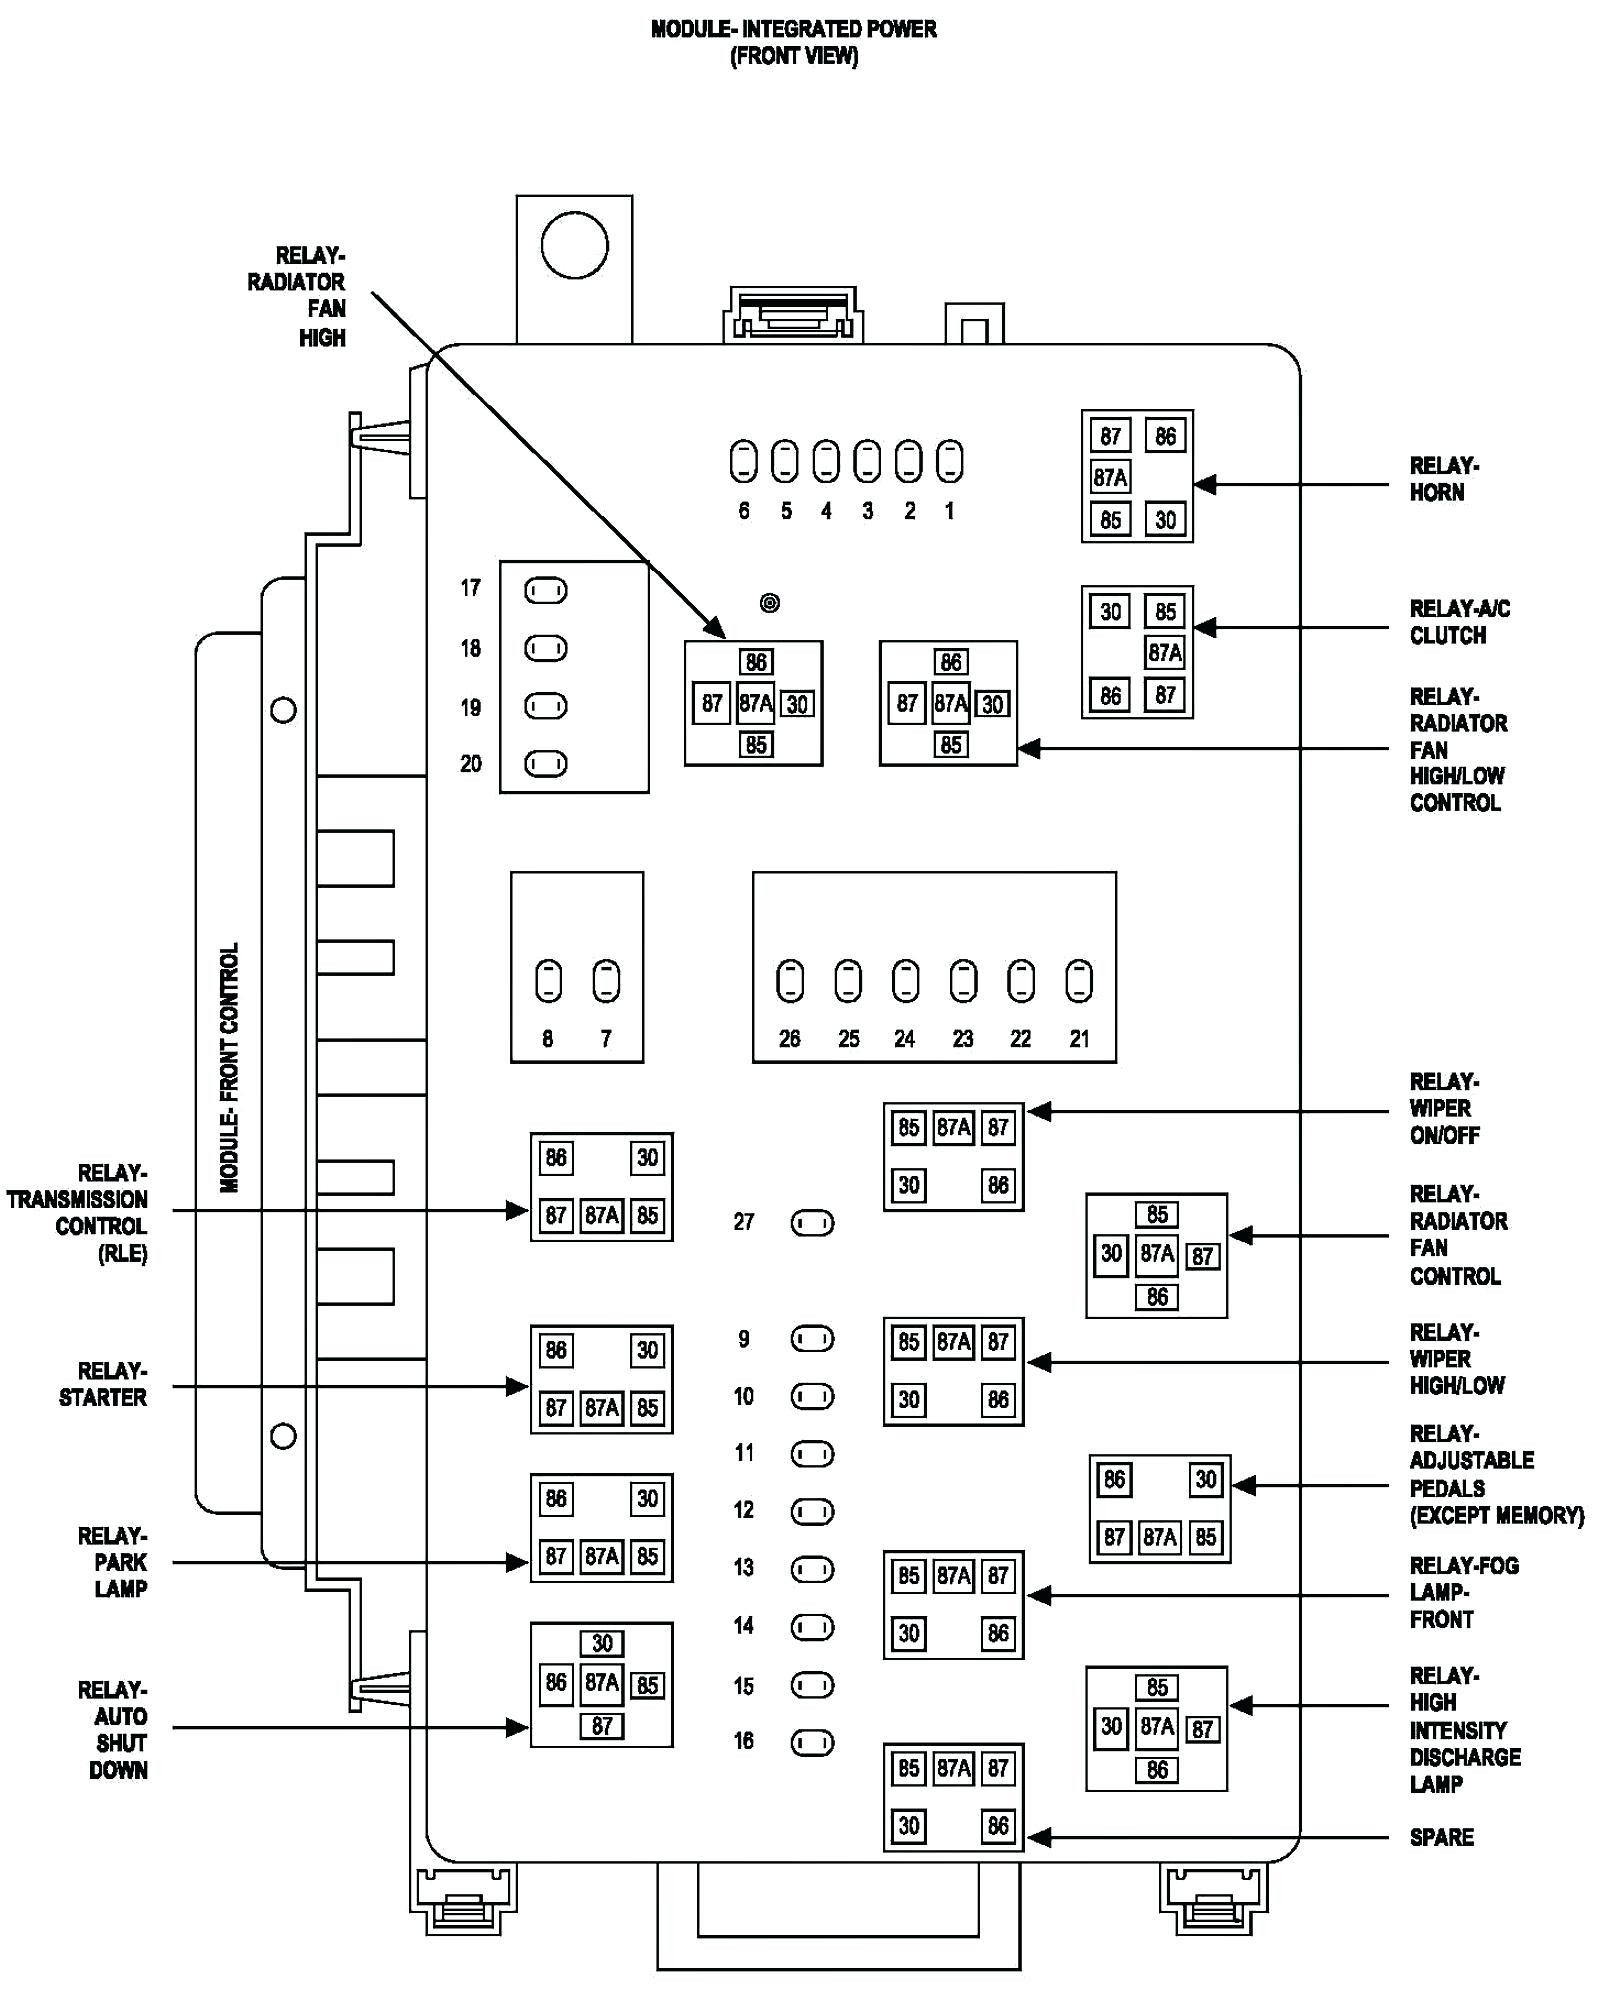 fuse box for dodge charger wiring diagram experts